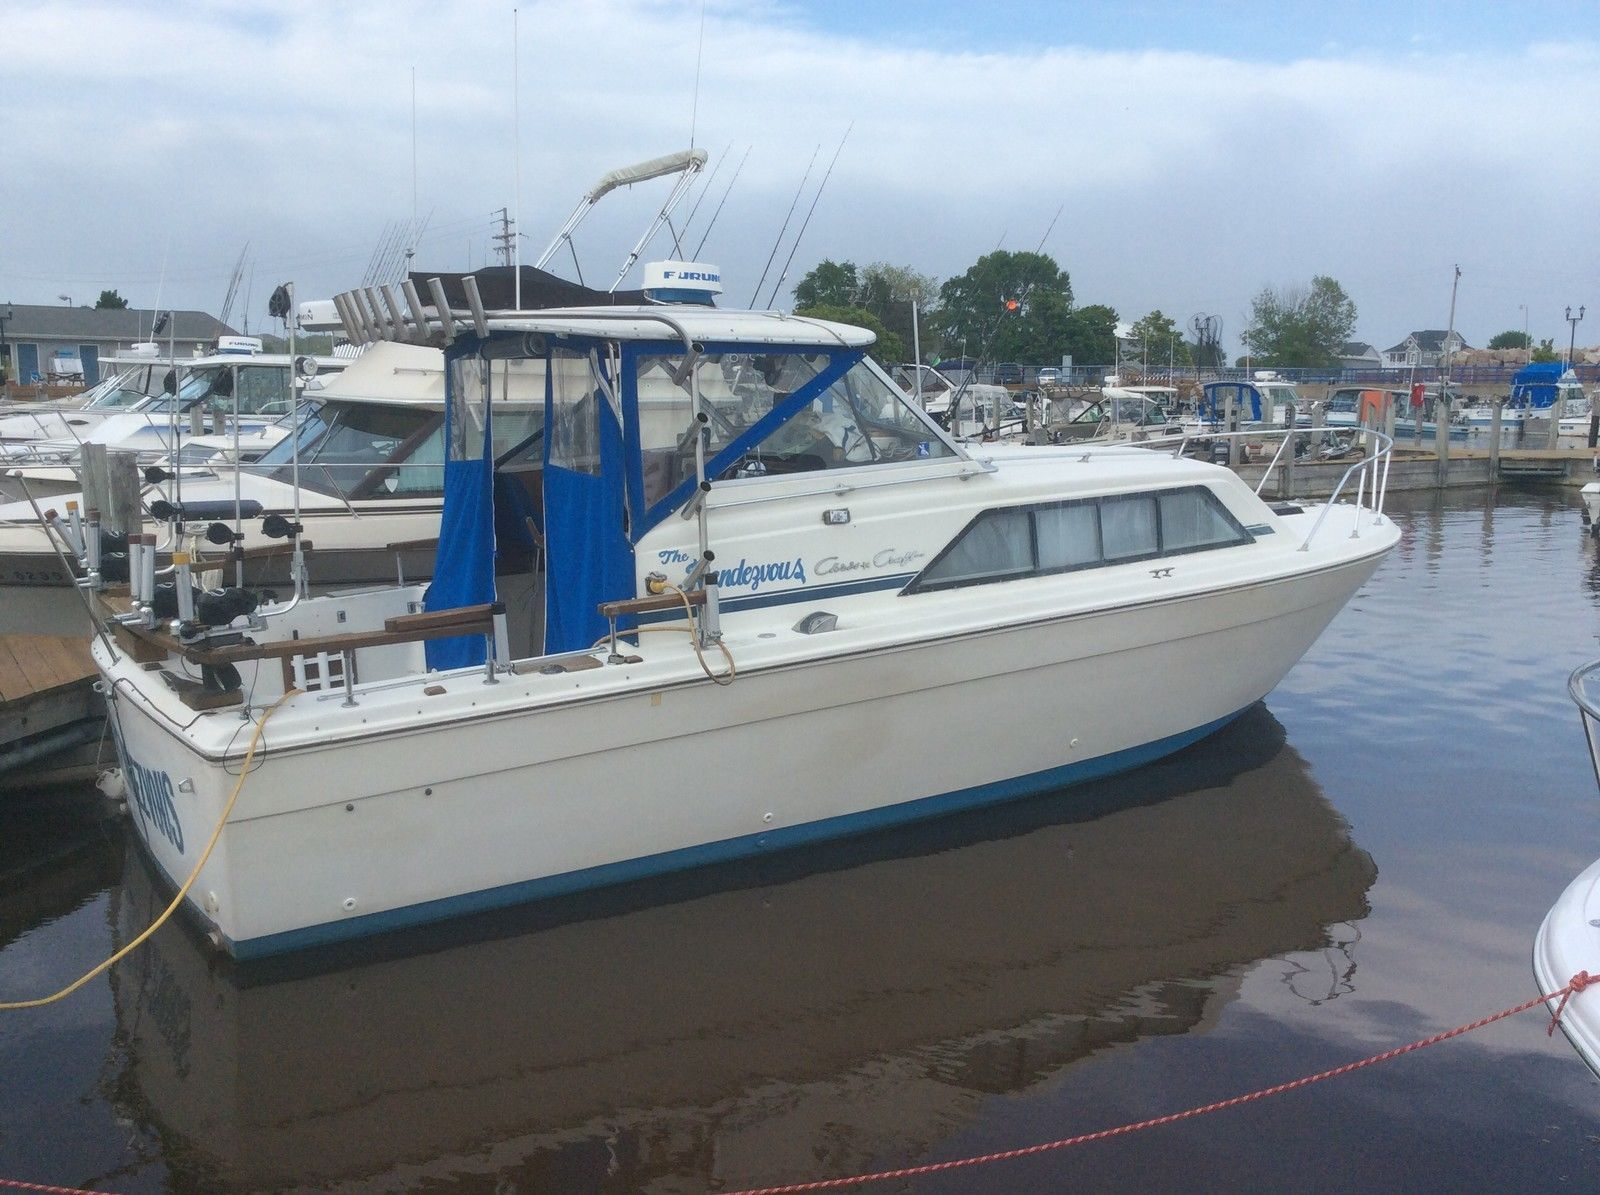 38+ Chris craft catalina 381 info